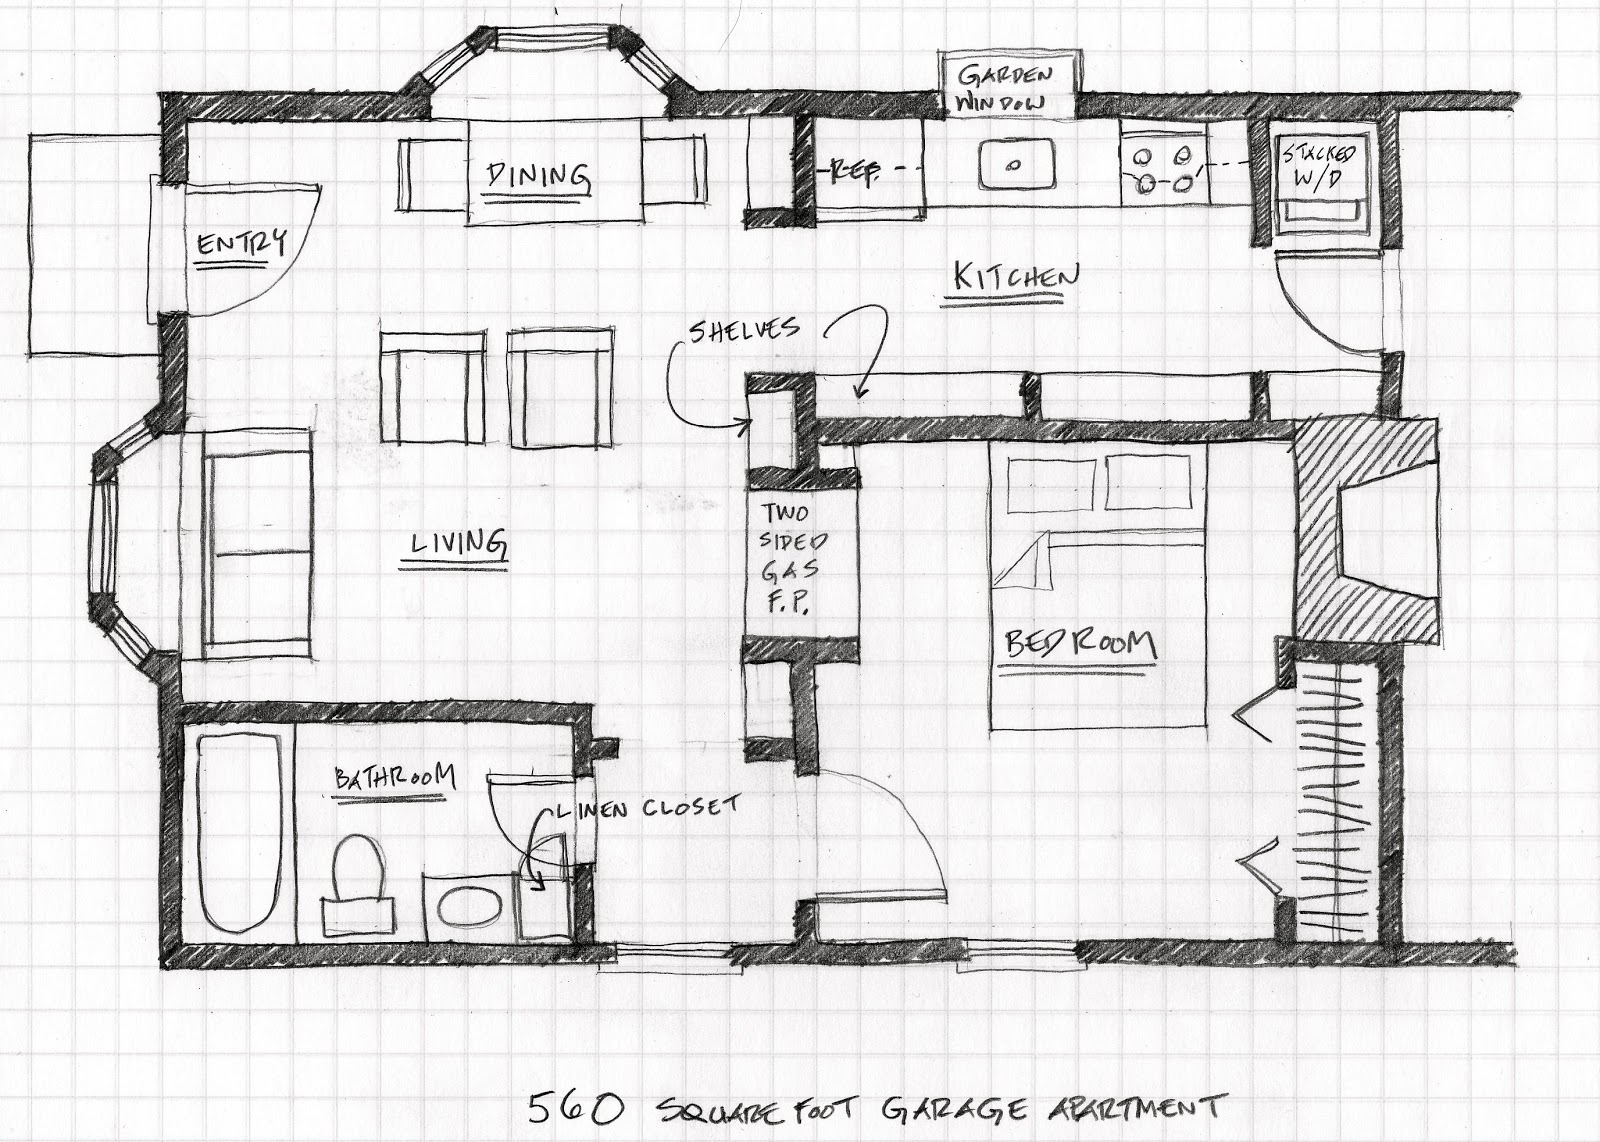 Floor plan for 560 square foot garage apartment.